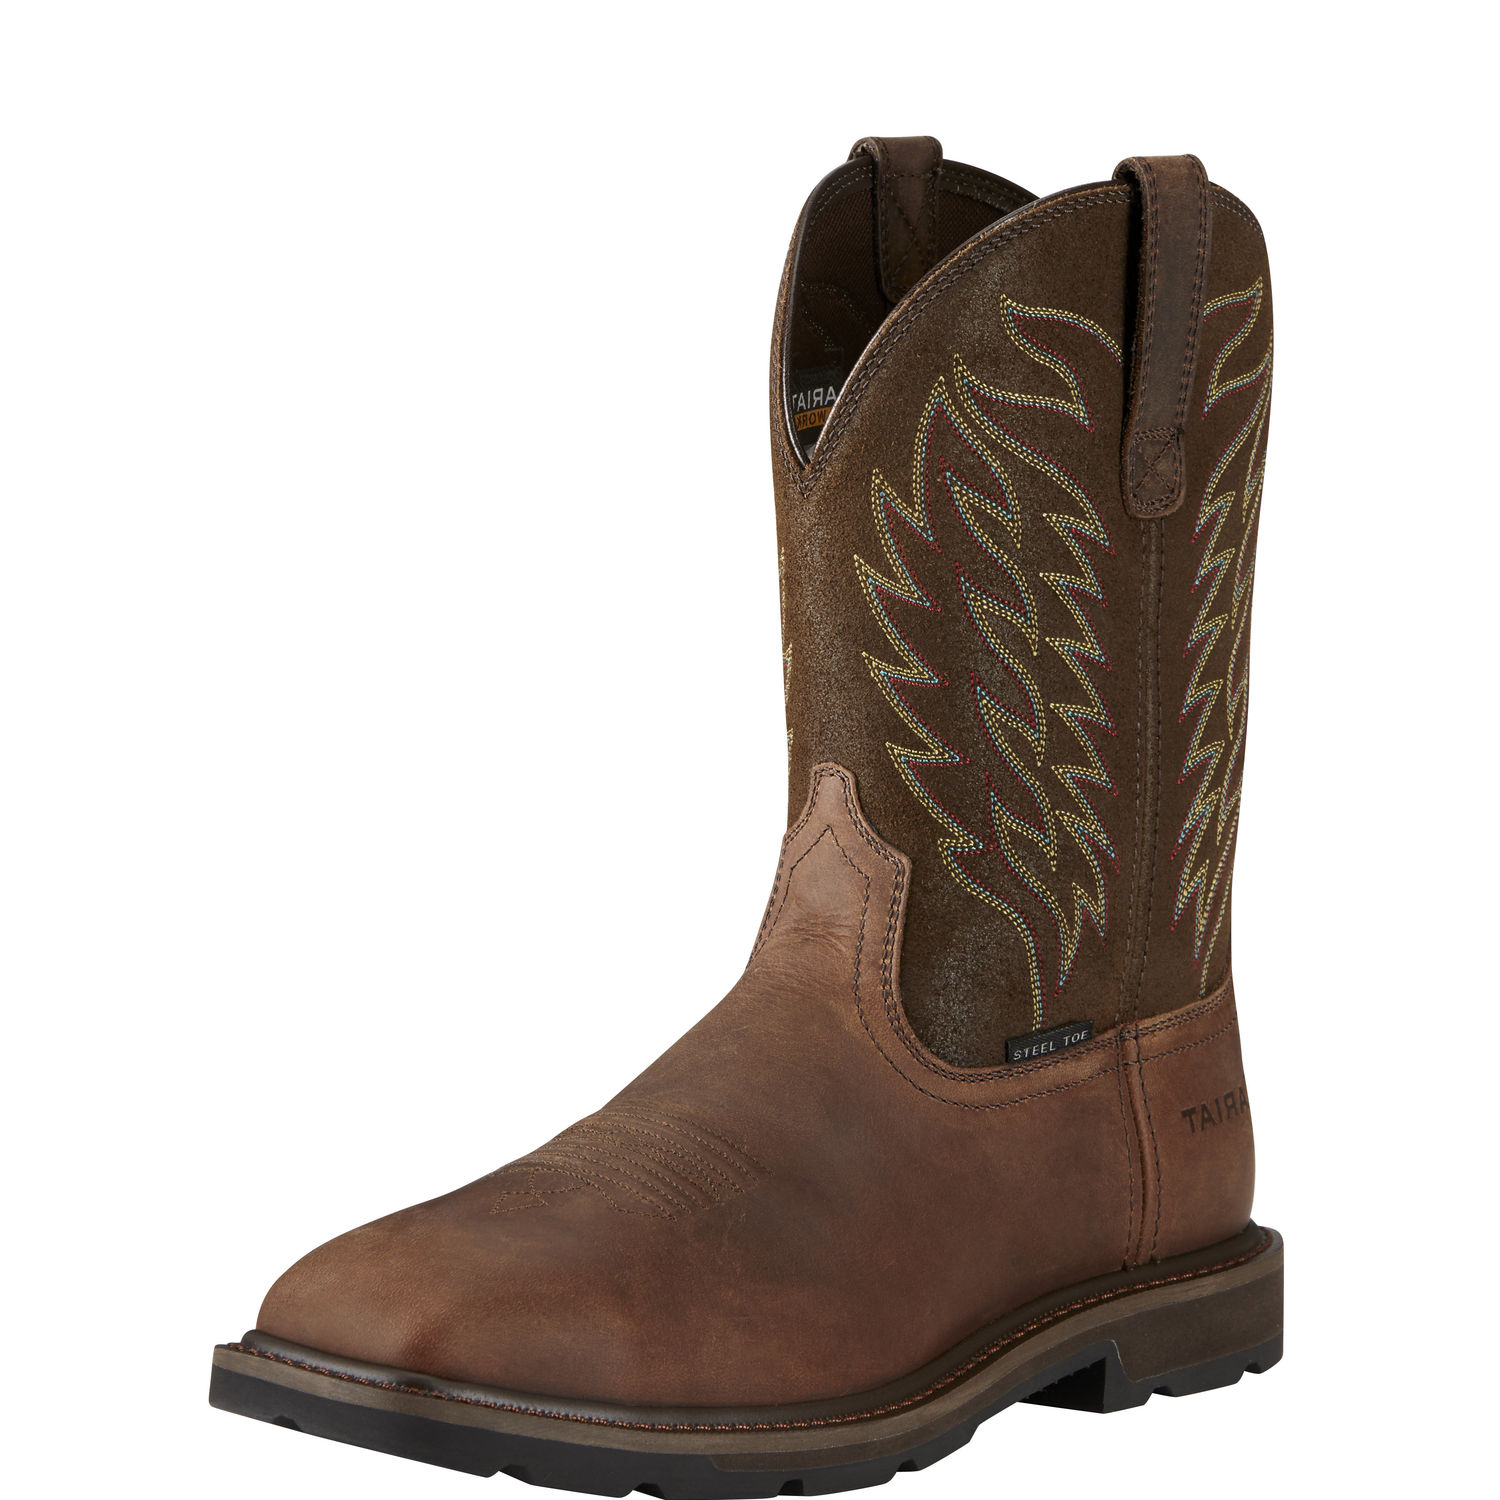 Grouondbreaker Steel Toe -Ariat